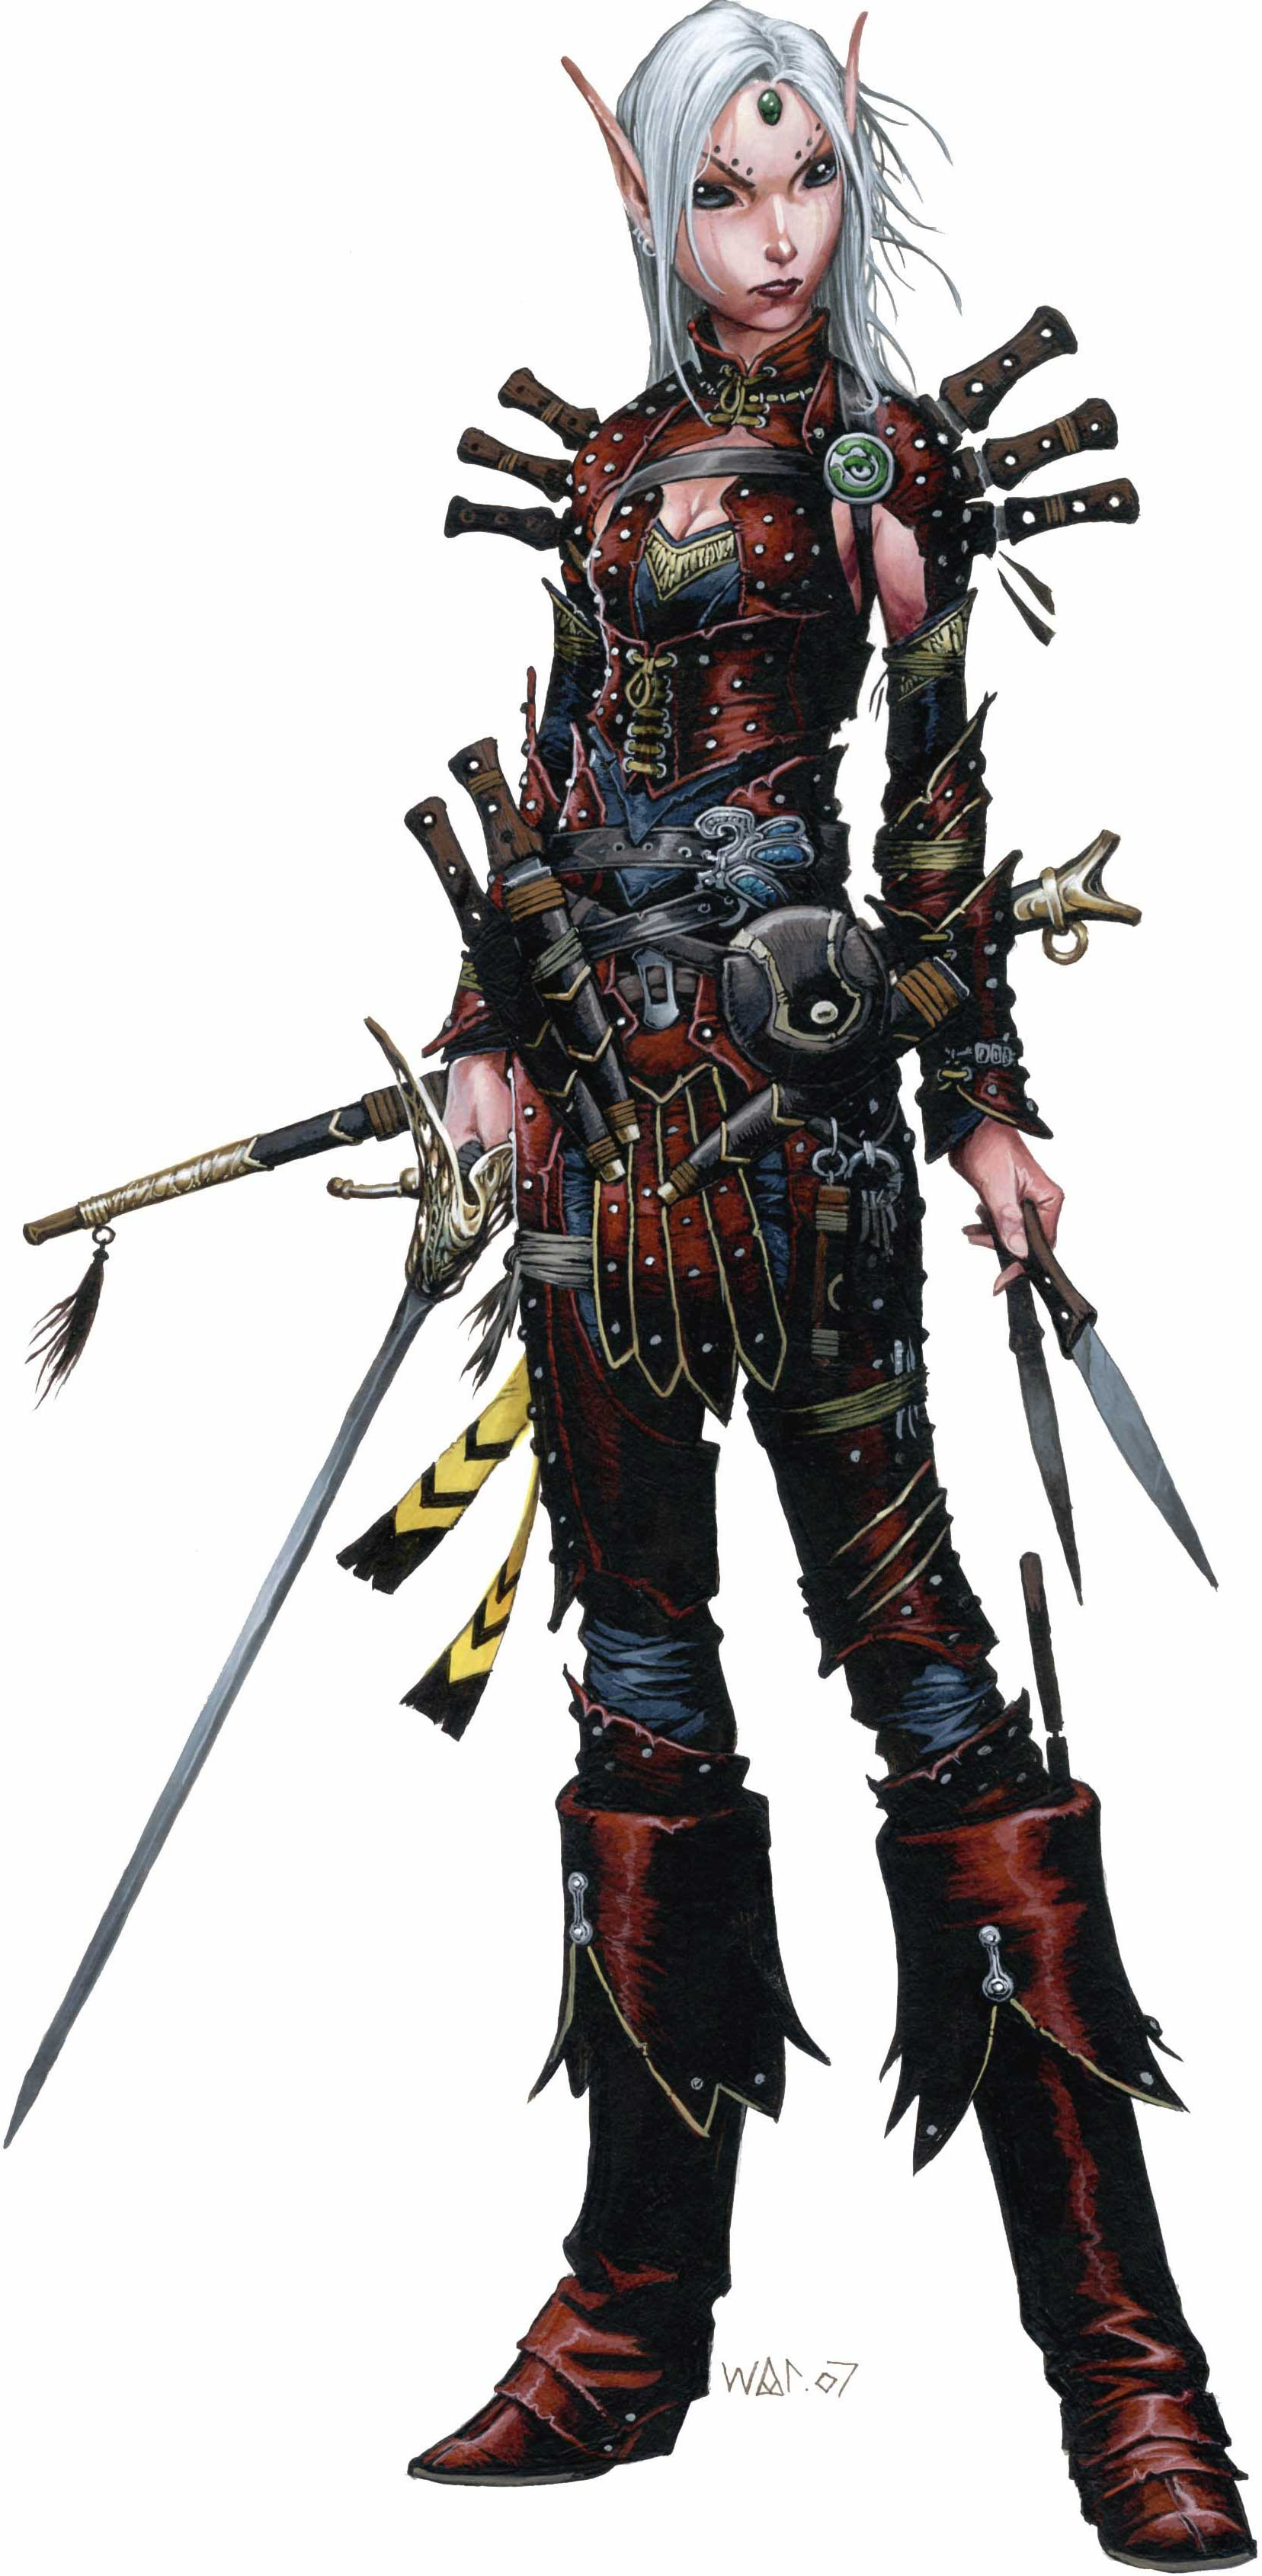 Intimidating prowess paizo character